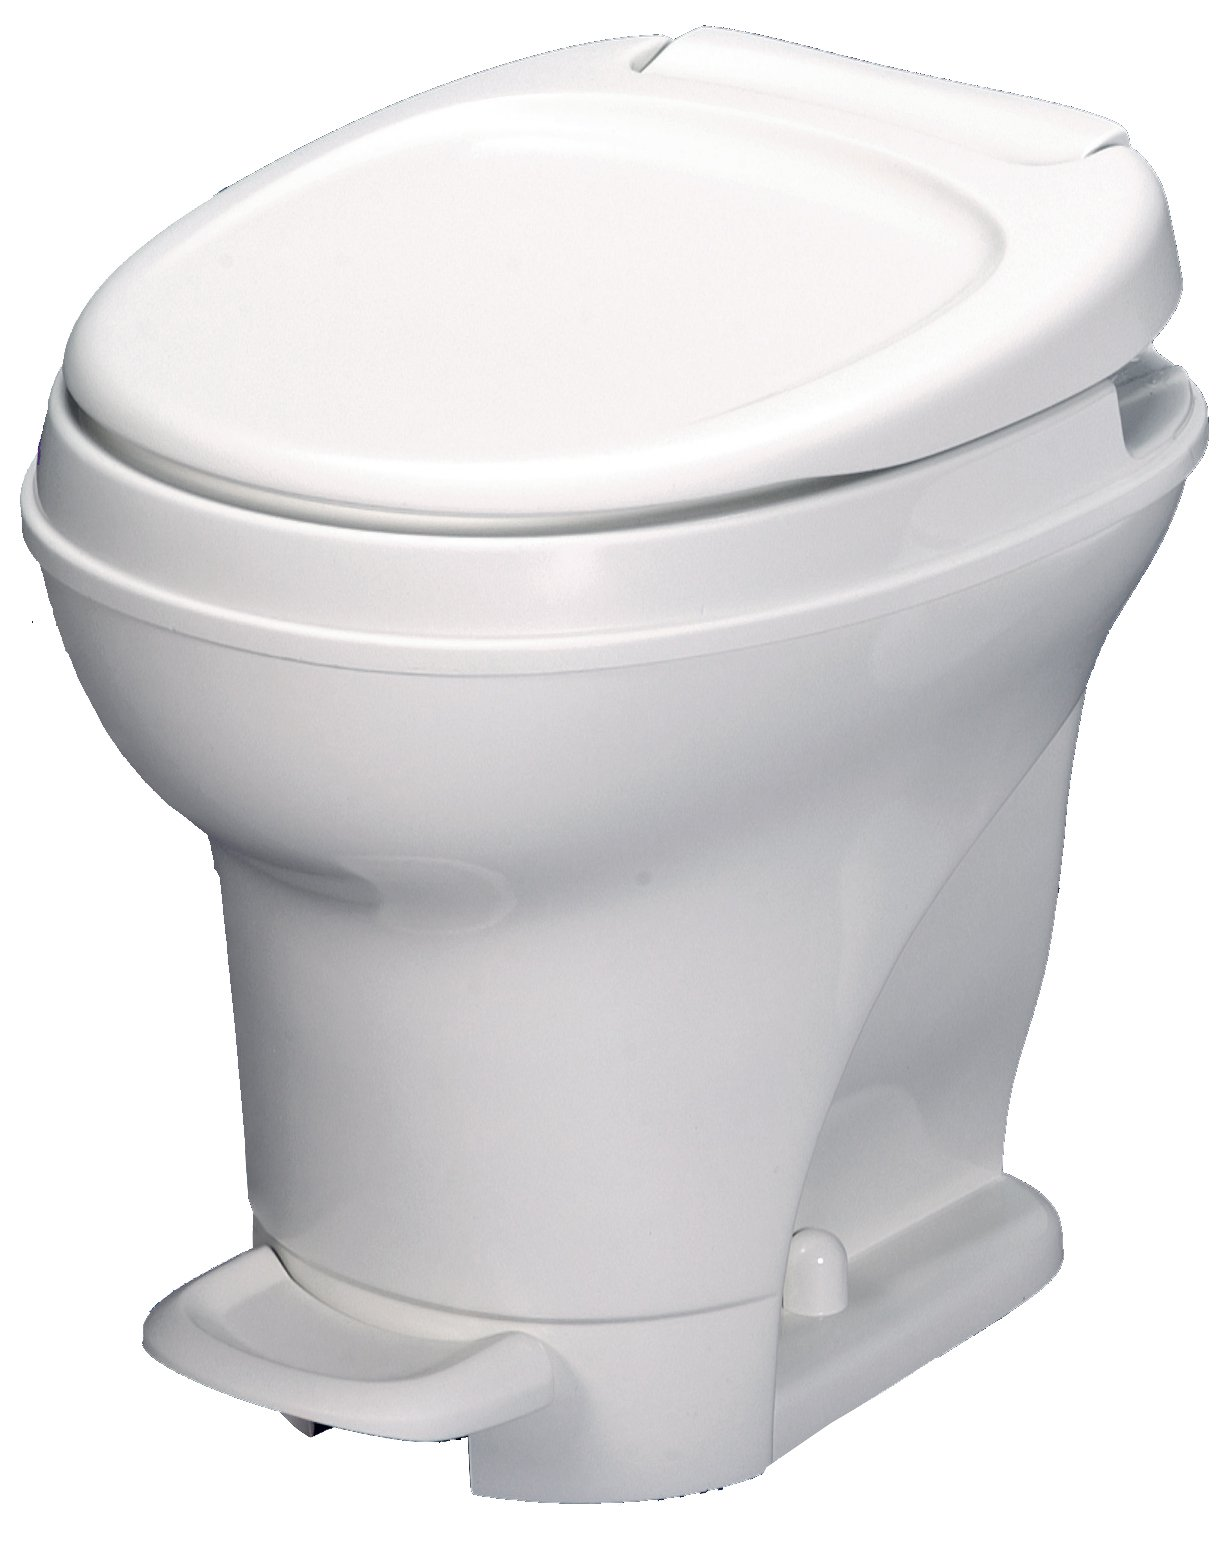 Aqua-Magic V RV Toilet Pedal Flush / High Profile / White - Thetford 31671 by Thetford